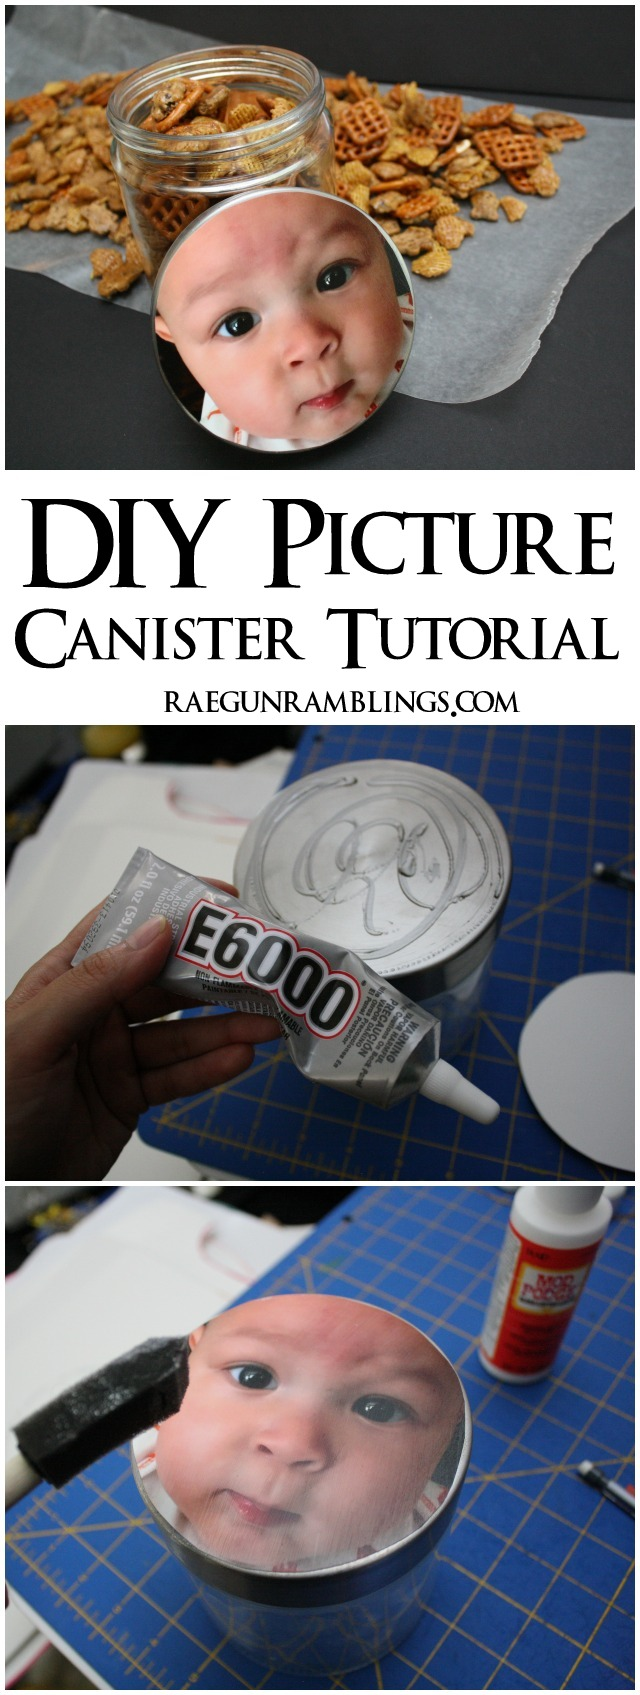 How to make a quick and easy photo jar - Rae Gun Ramblings